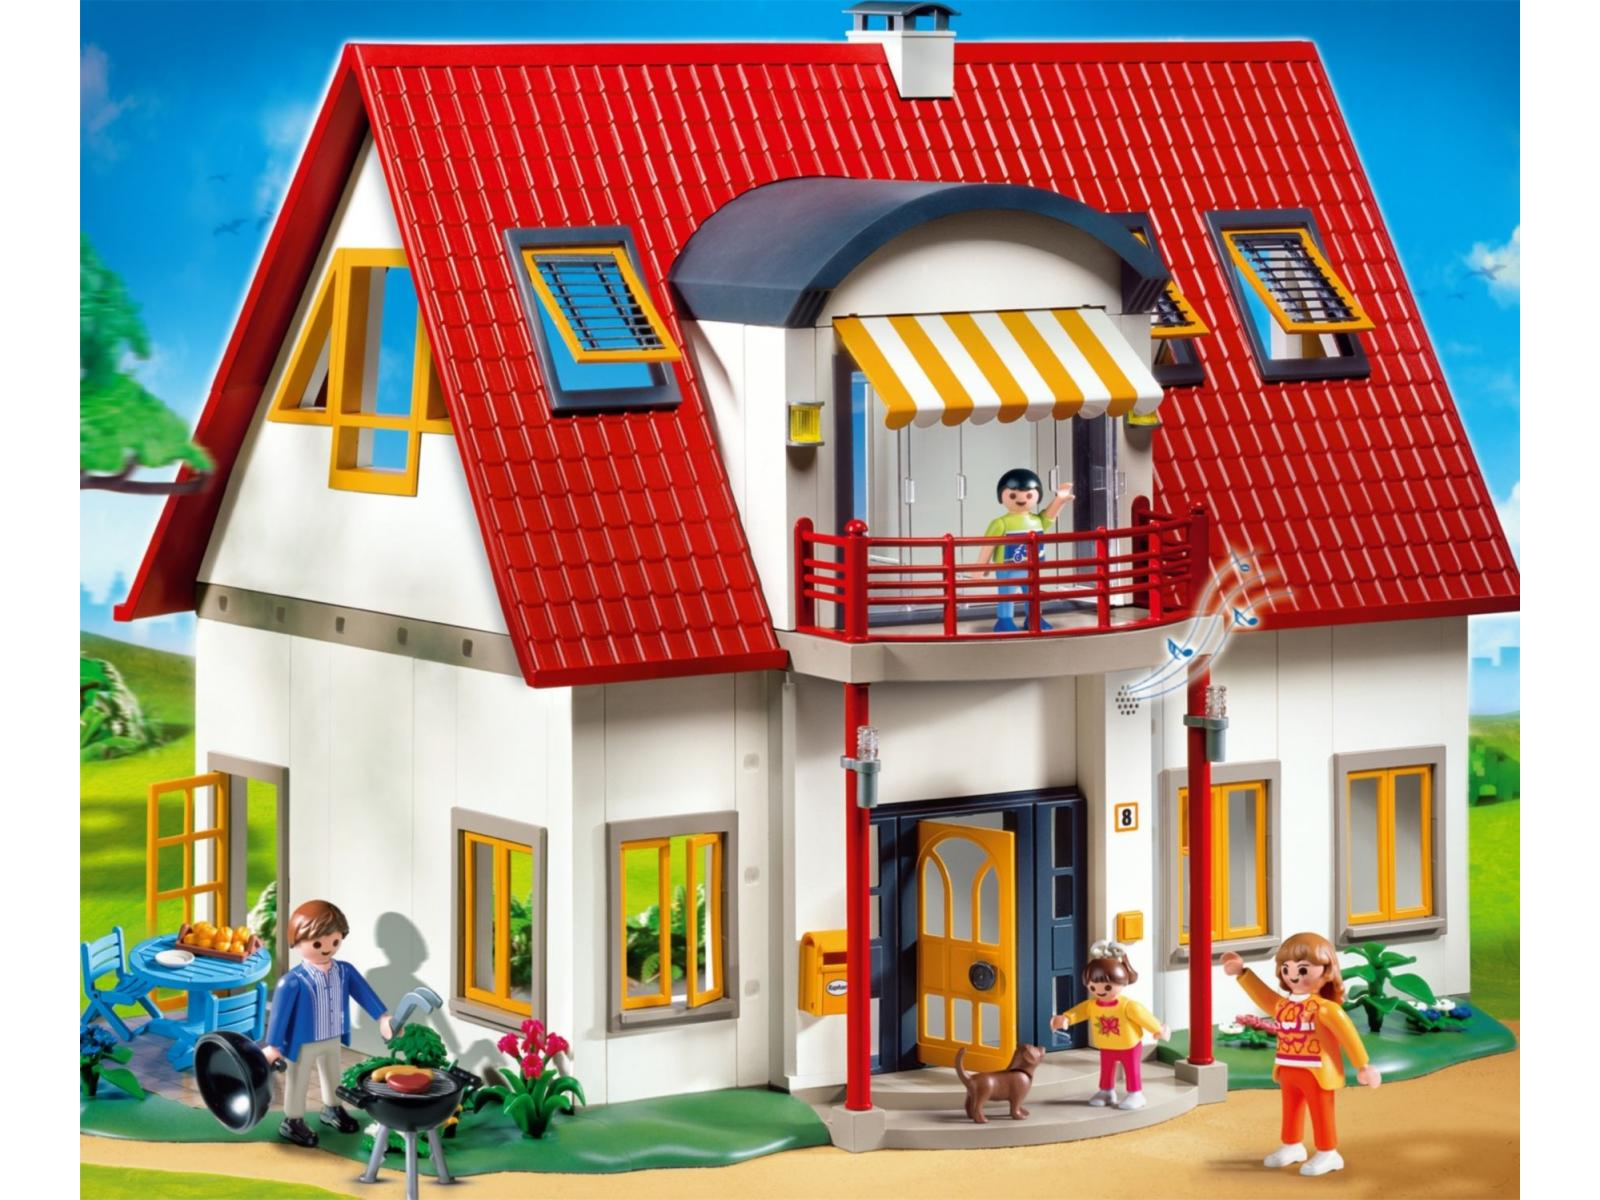 Hd wallpapers maison moderne playmobil belgique for Maison moderne playmobil